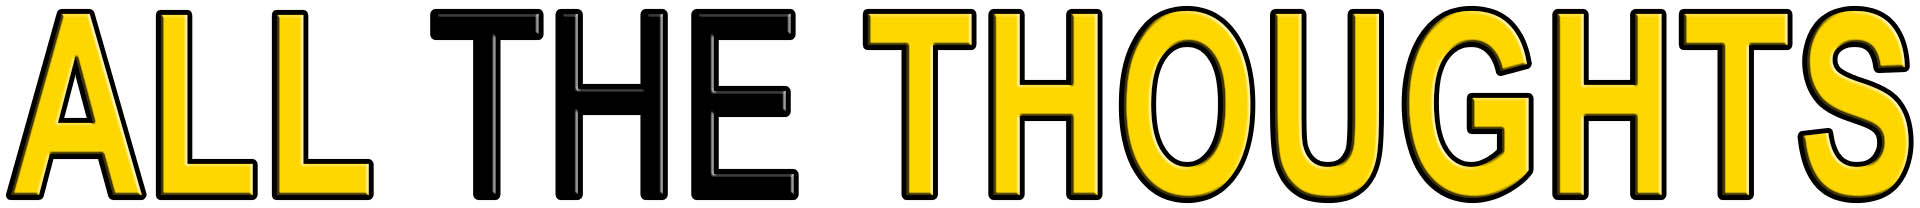 ALL THE THOUGHTS